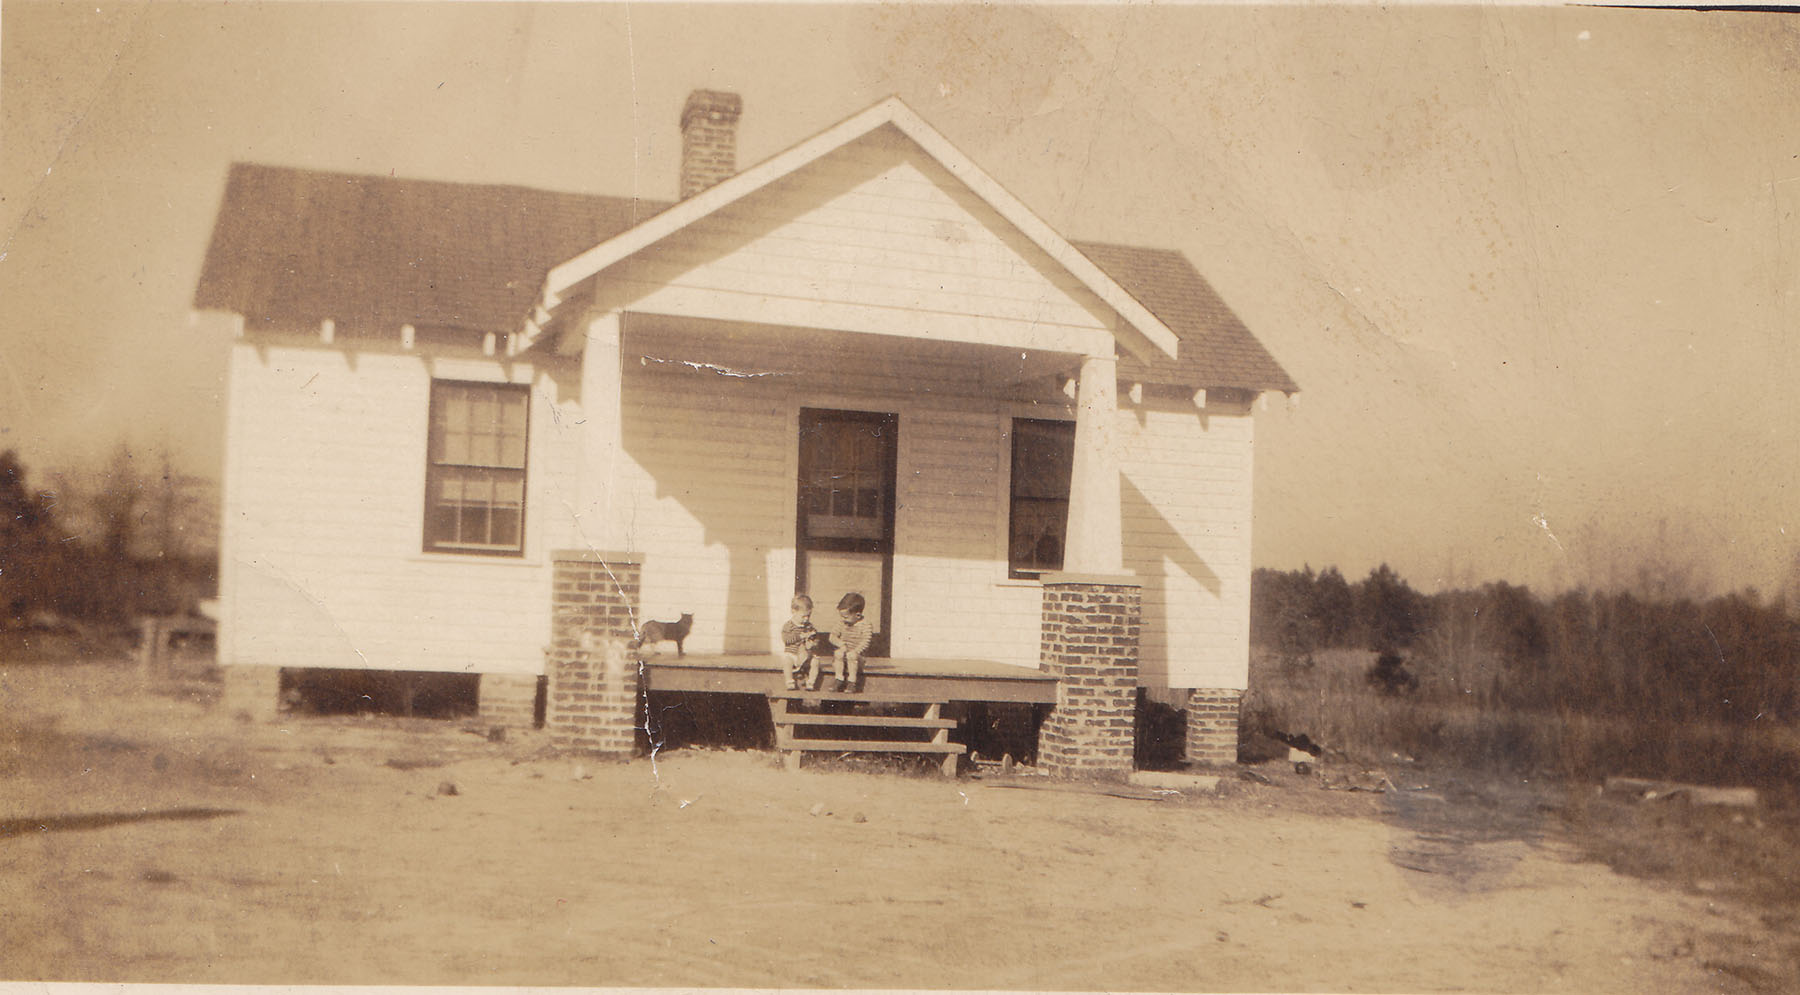 Delmas and Frances McLean home. Kenny and Sammy on porch about 1950.